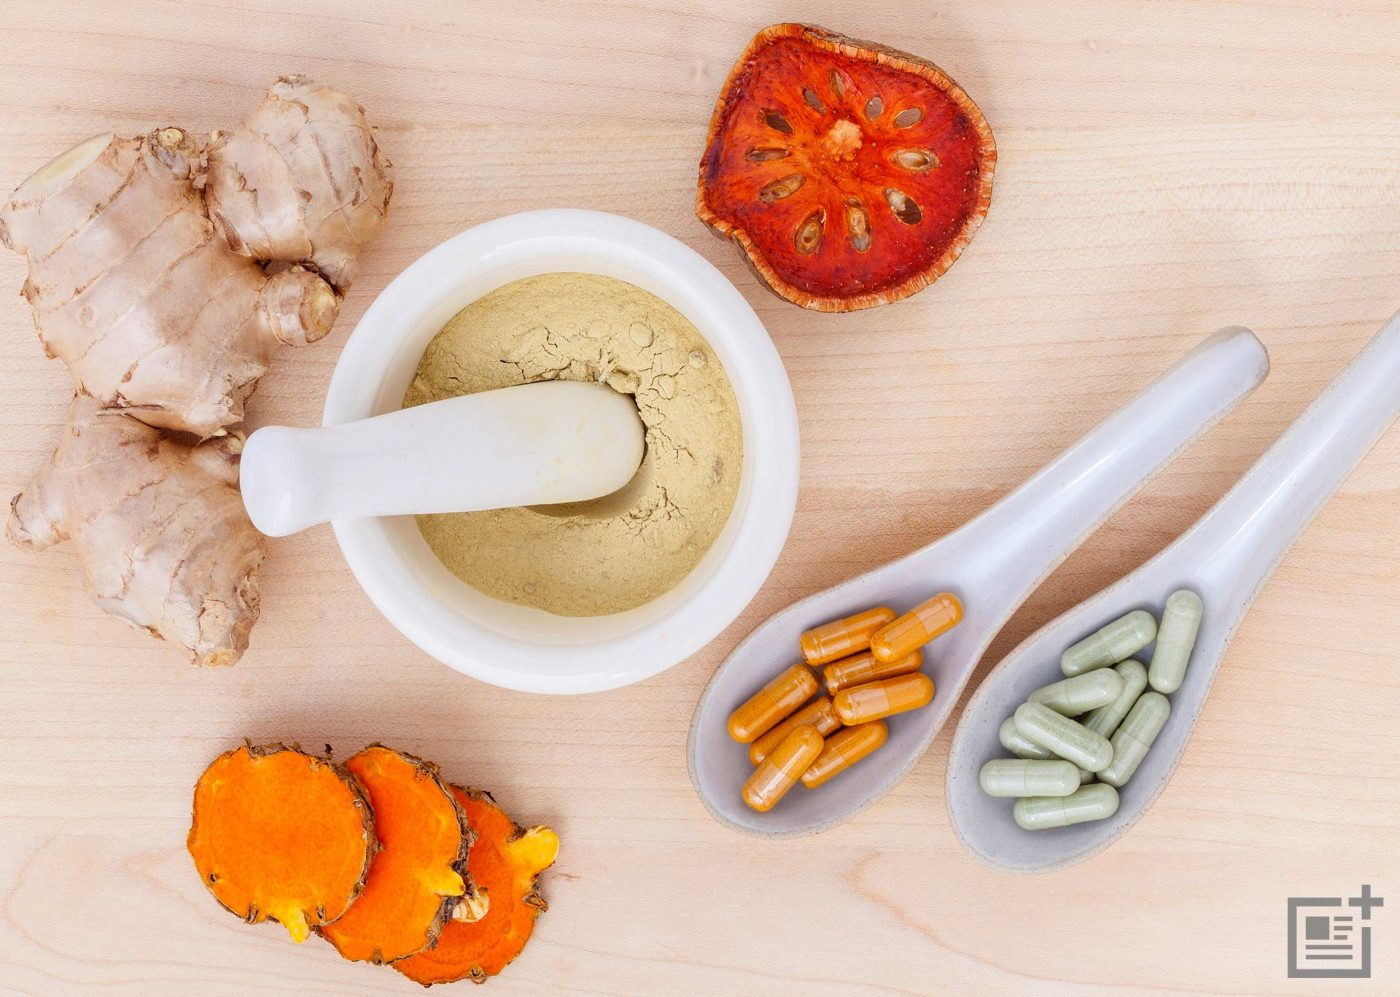 Forms of Nutraceuticals, dietary supplements